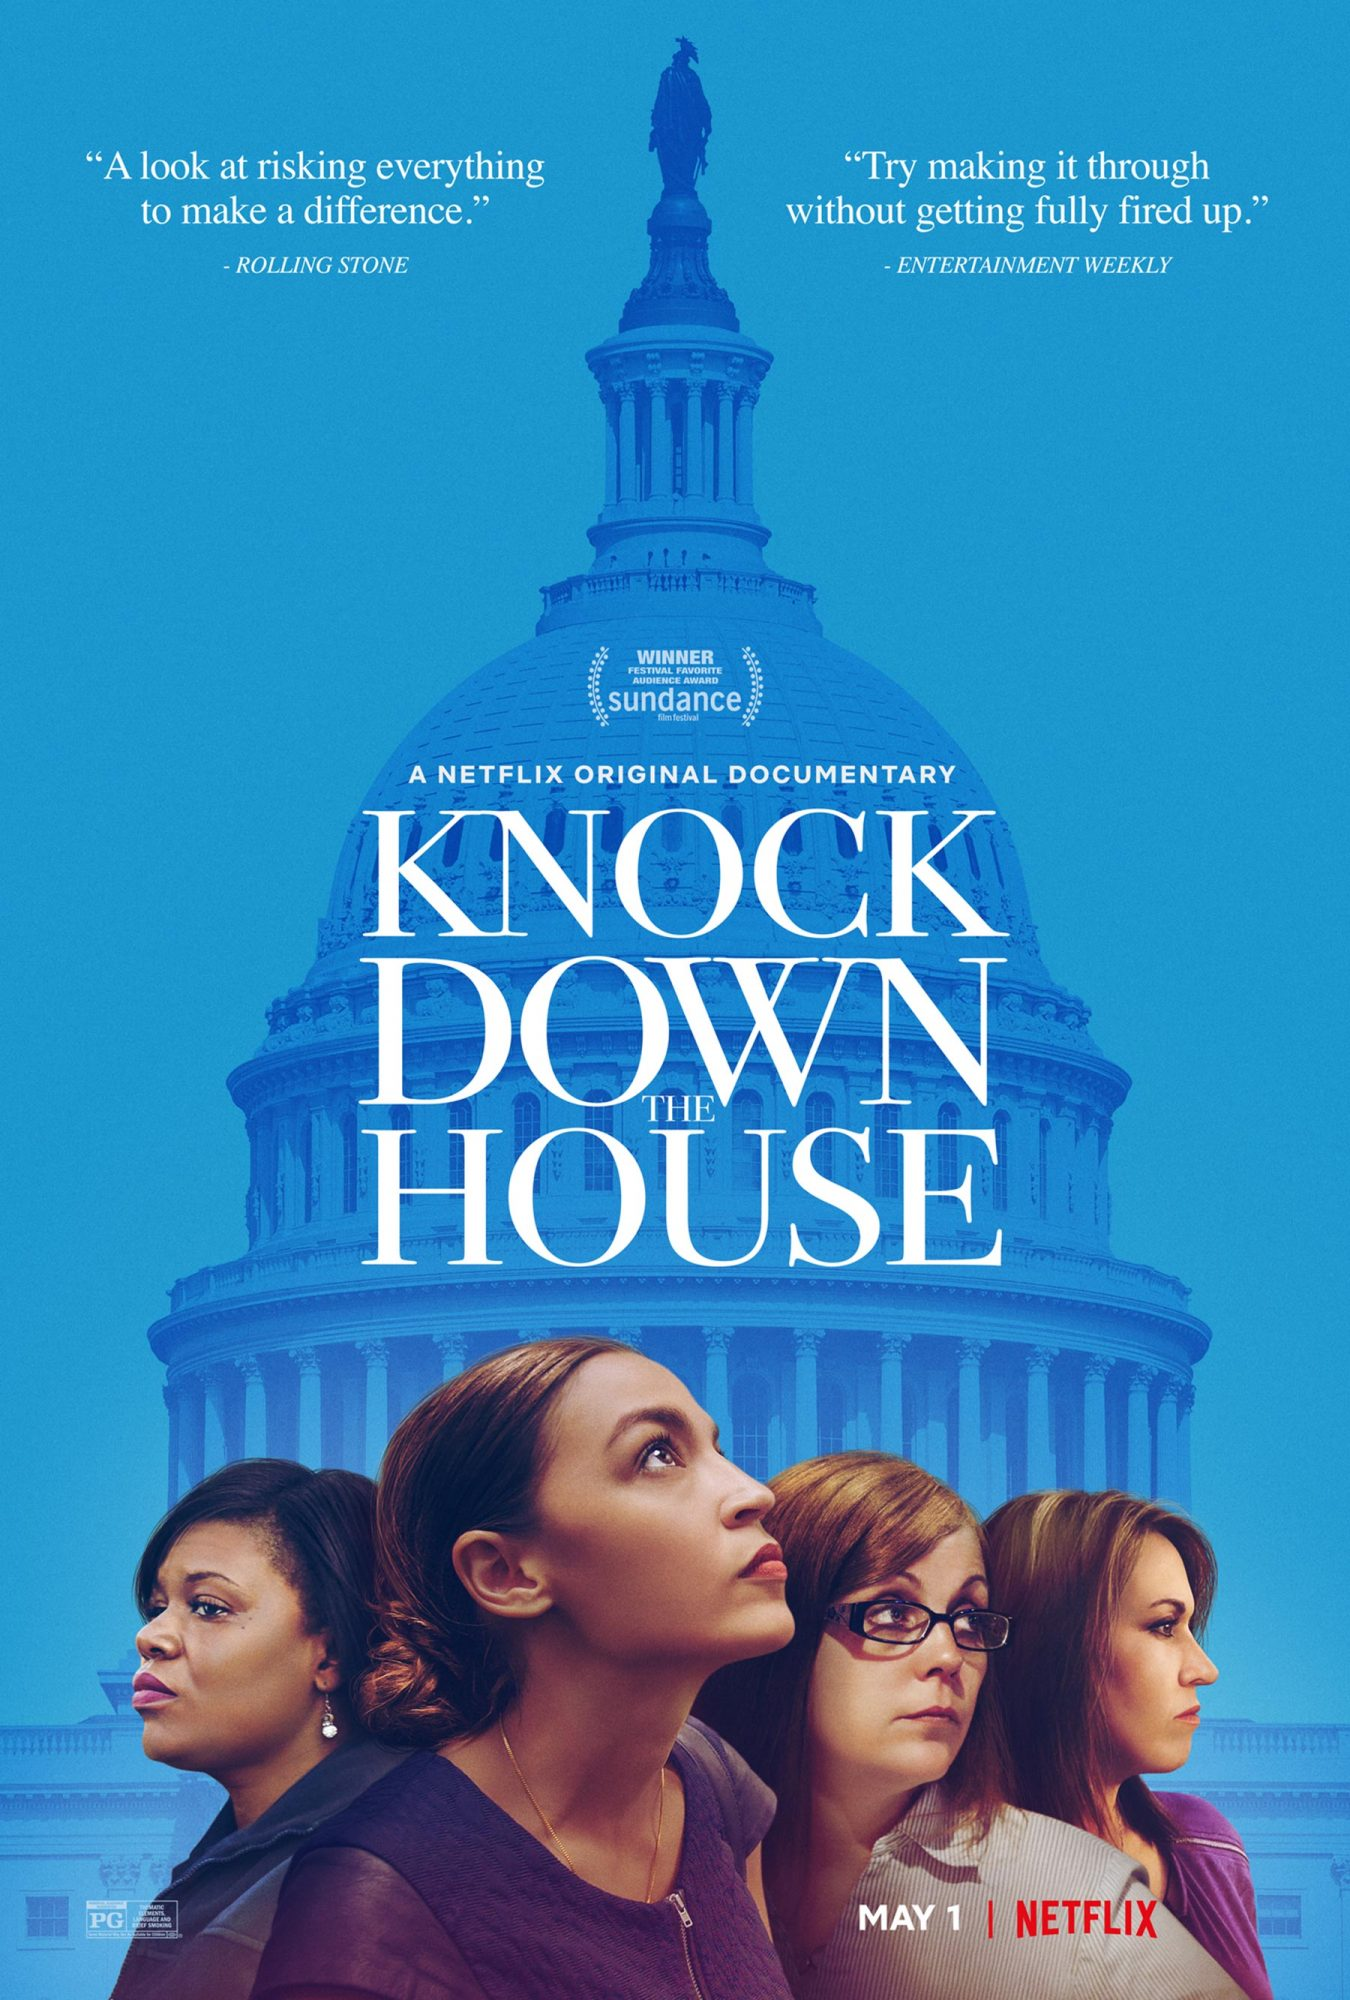 Knock_Down_The-House_Vertical-Main_PRE